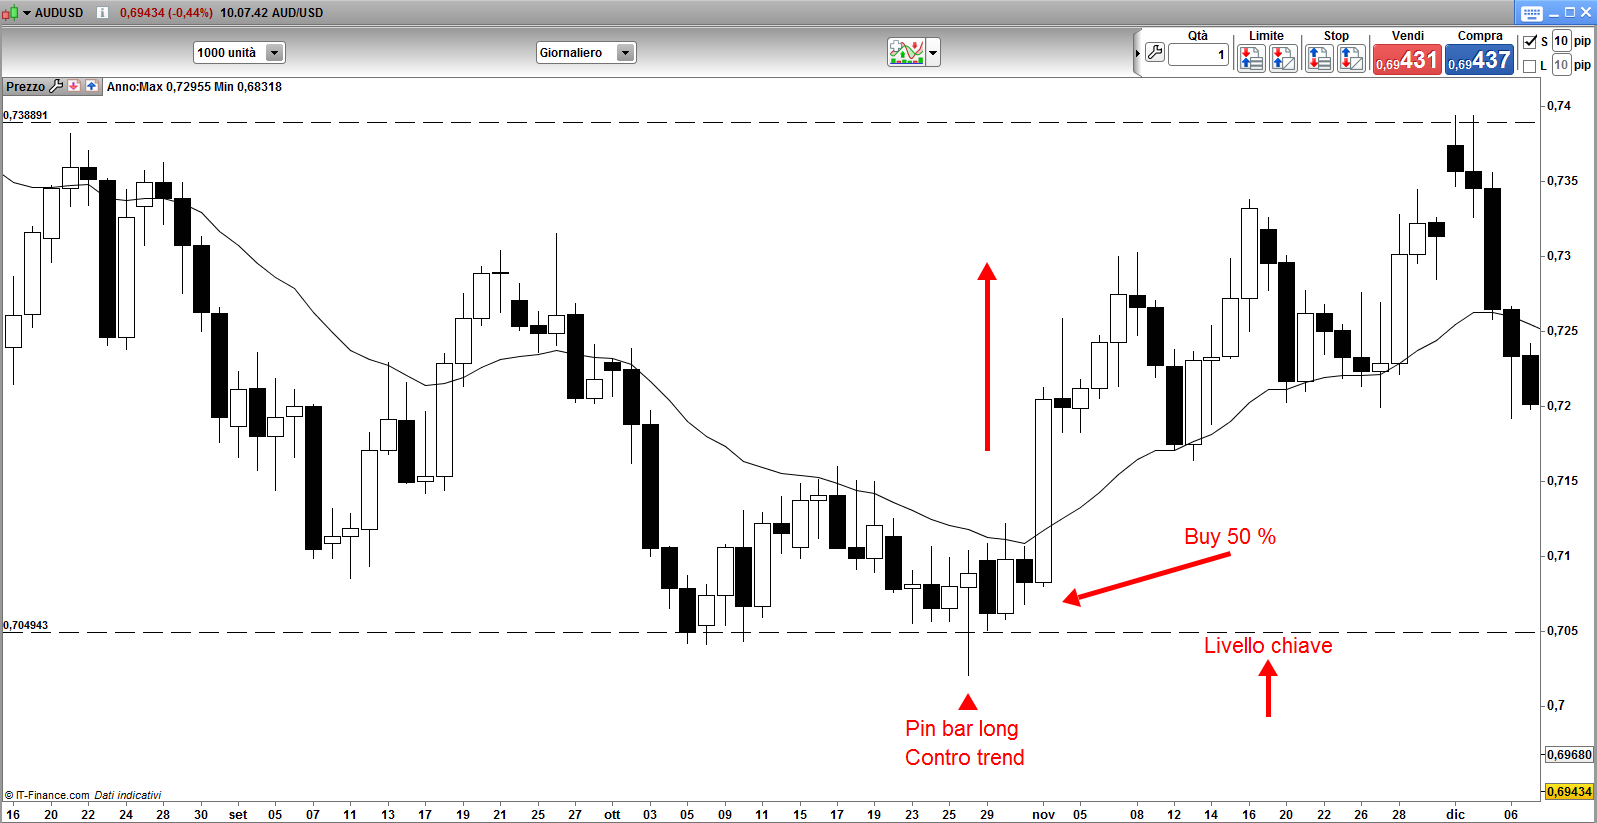 AUD/USD Grafico Time Frame Daily